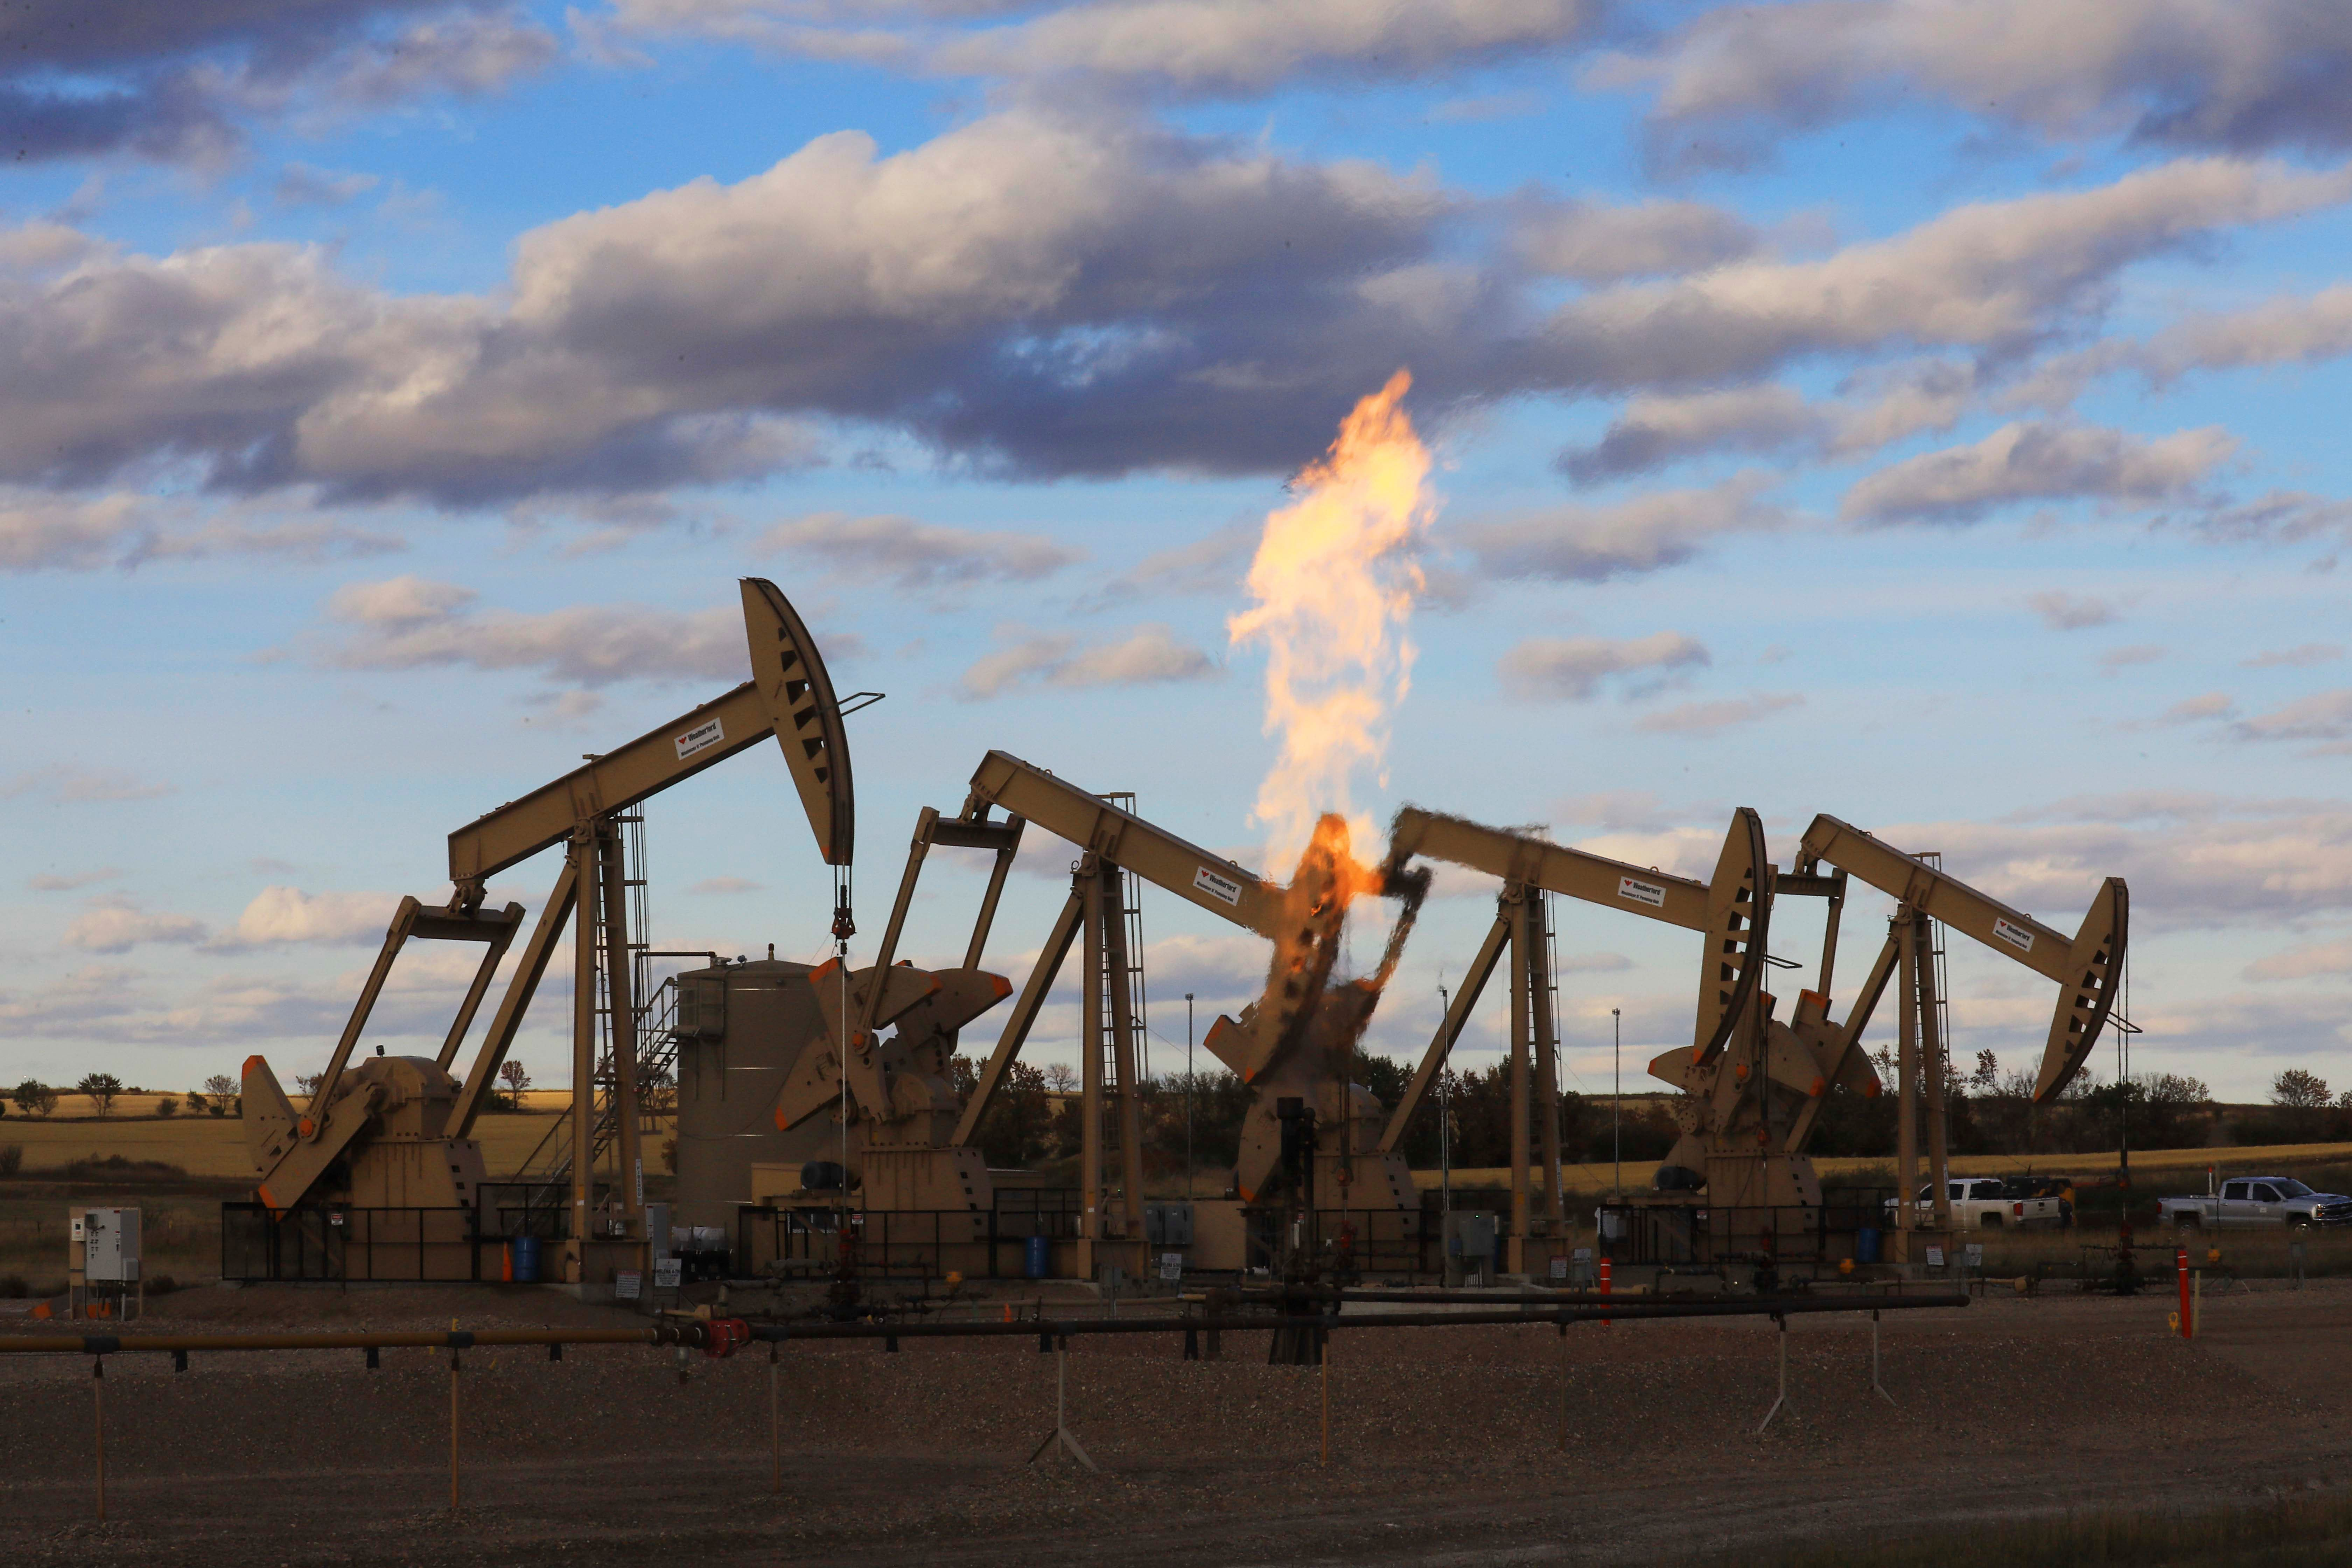 Q&A on Fossil Fuel Subsidies